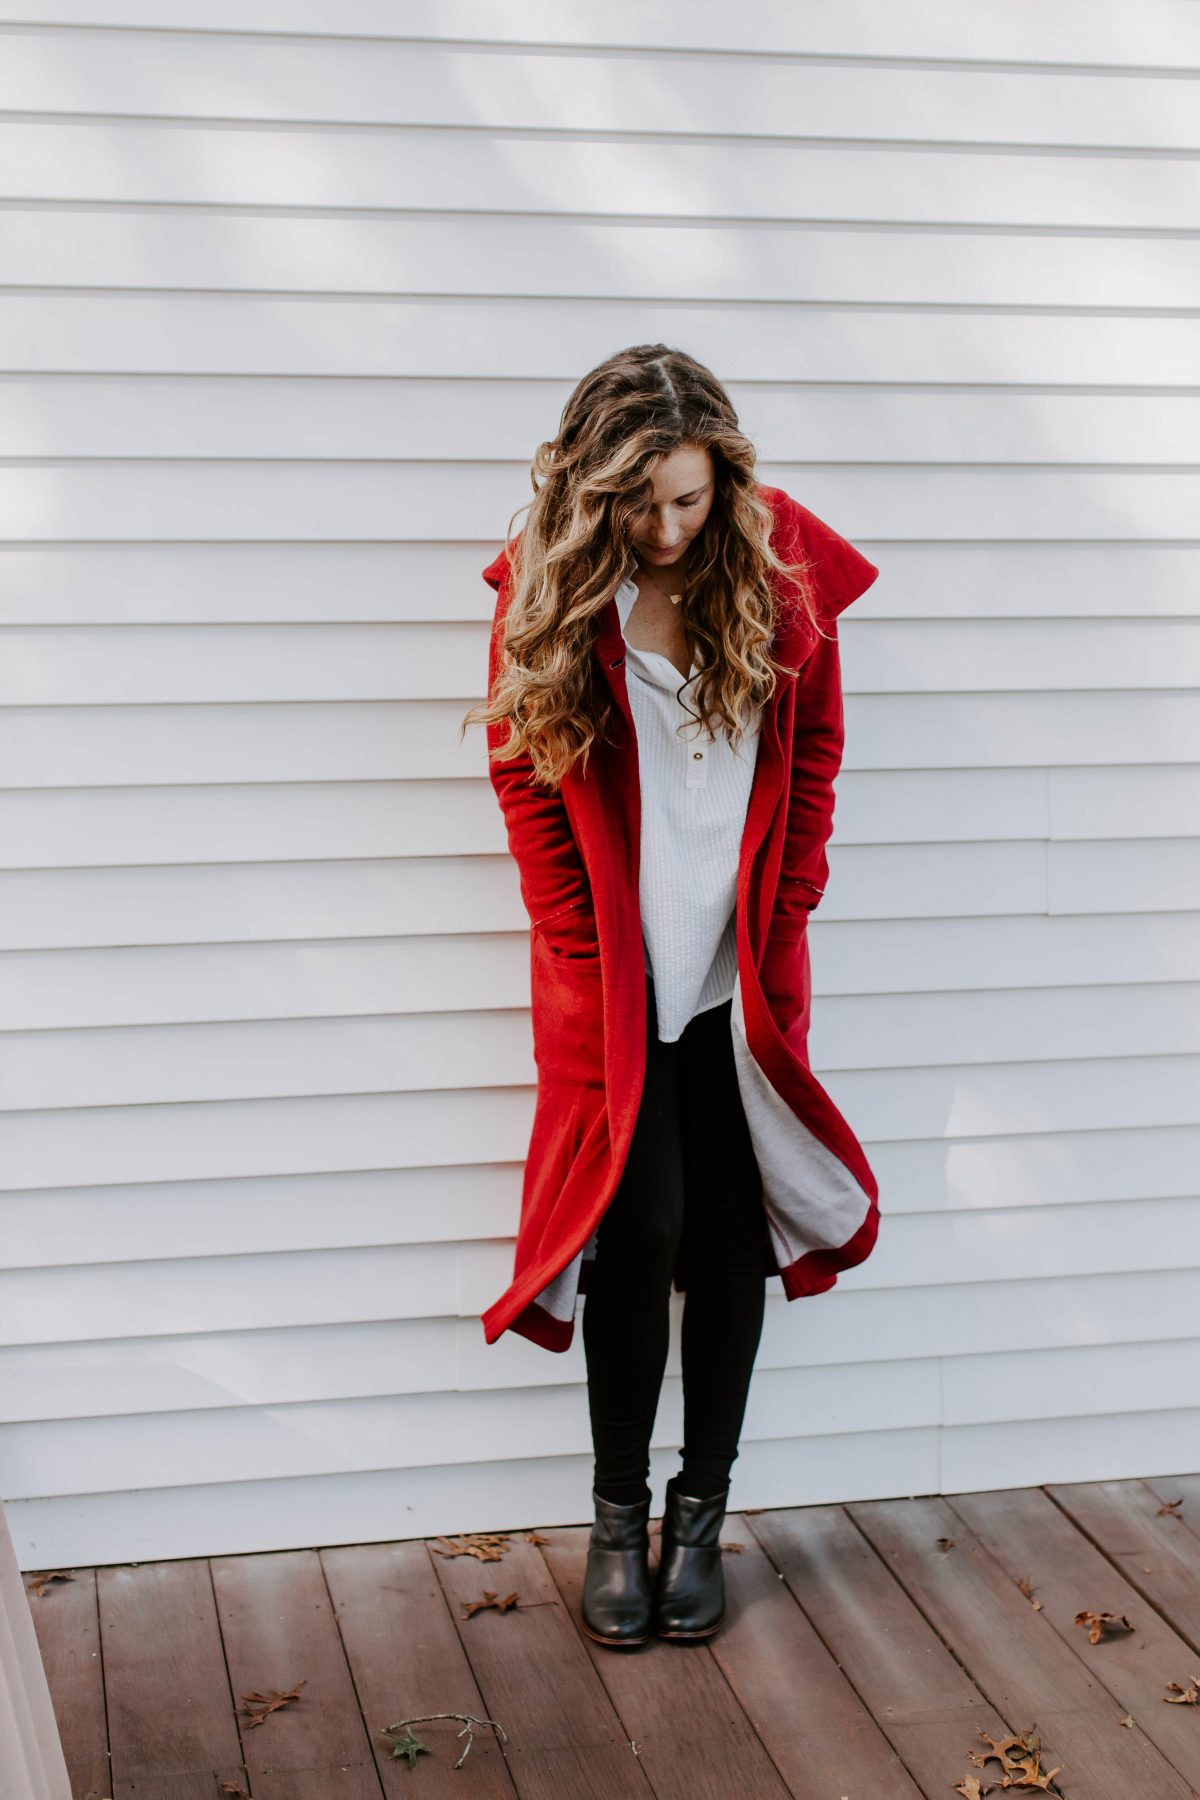 Woman wearing red long coat looking down at her feet